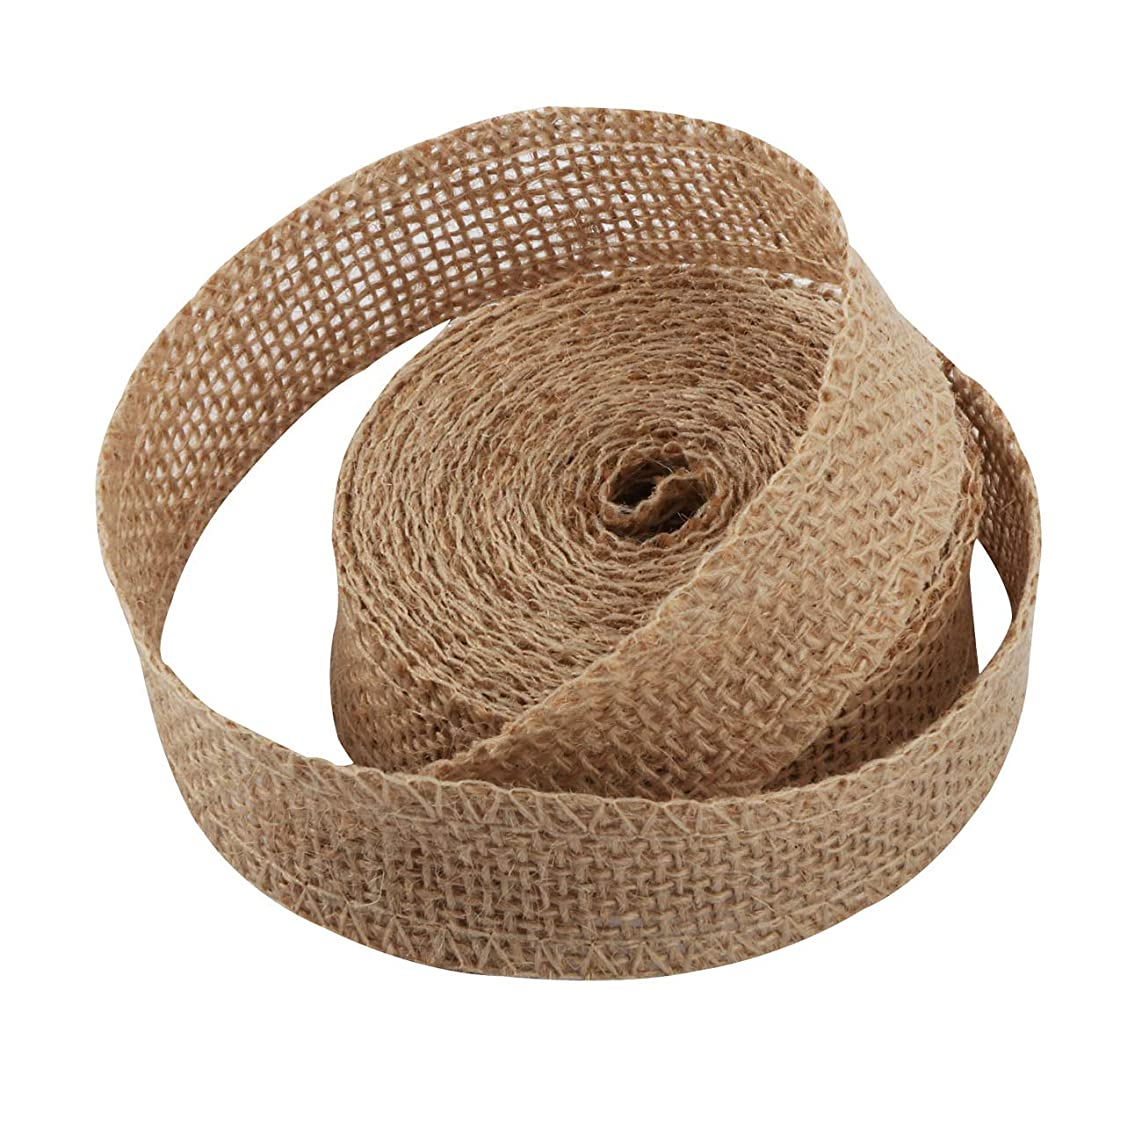 Pure Handmade Mesh Burlap Wedding Ribbon 5Yards X 1Inch for Banquet Floral Decorations Holiday Design